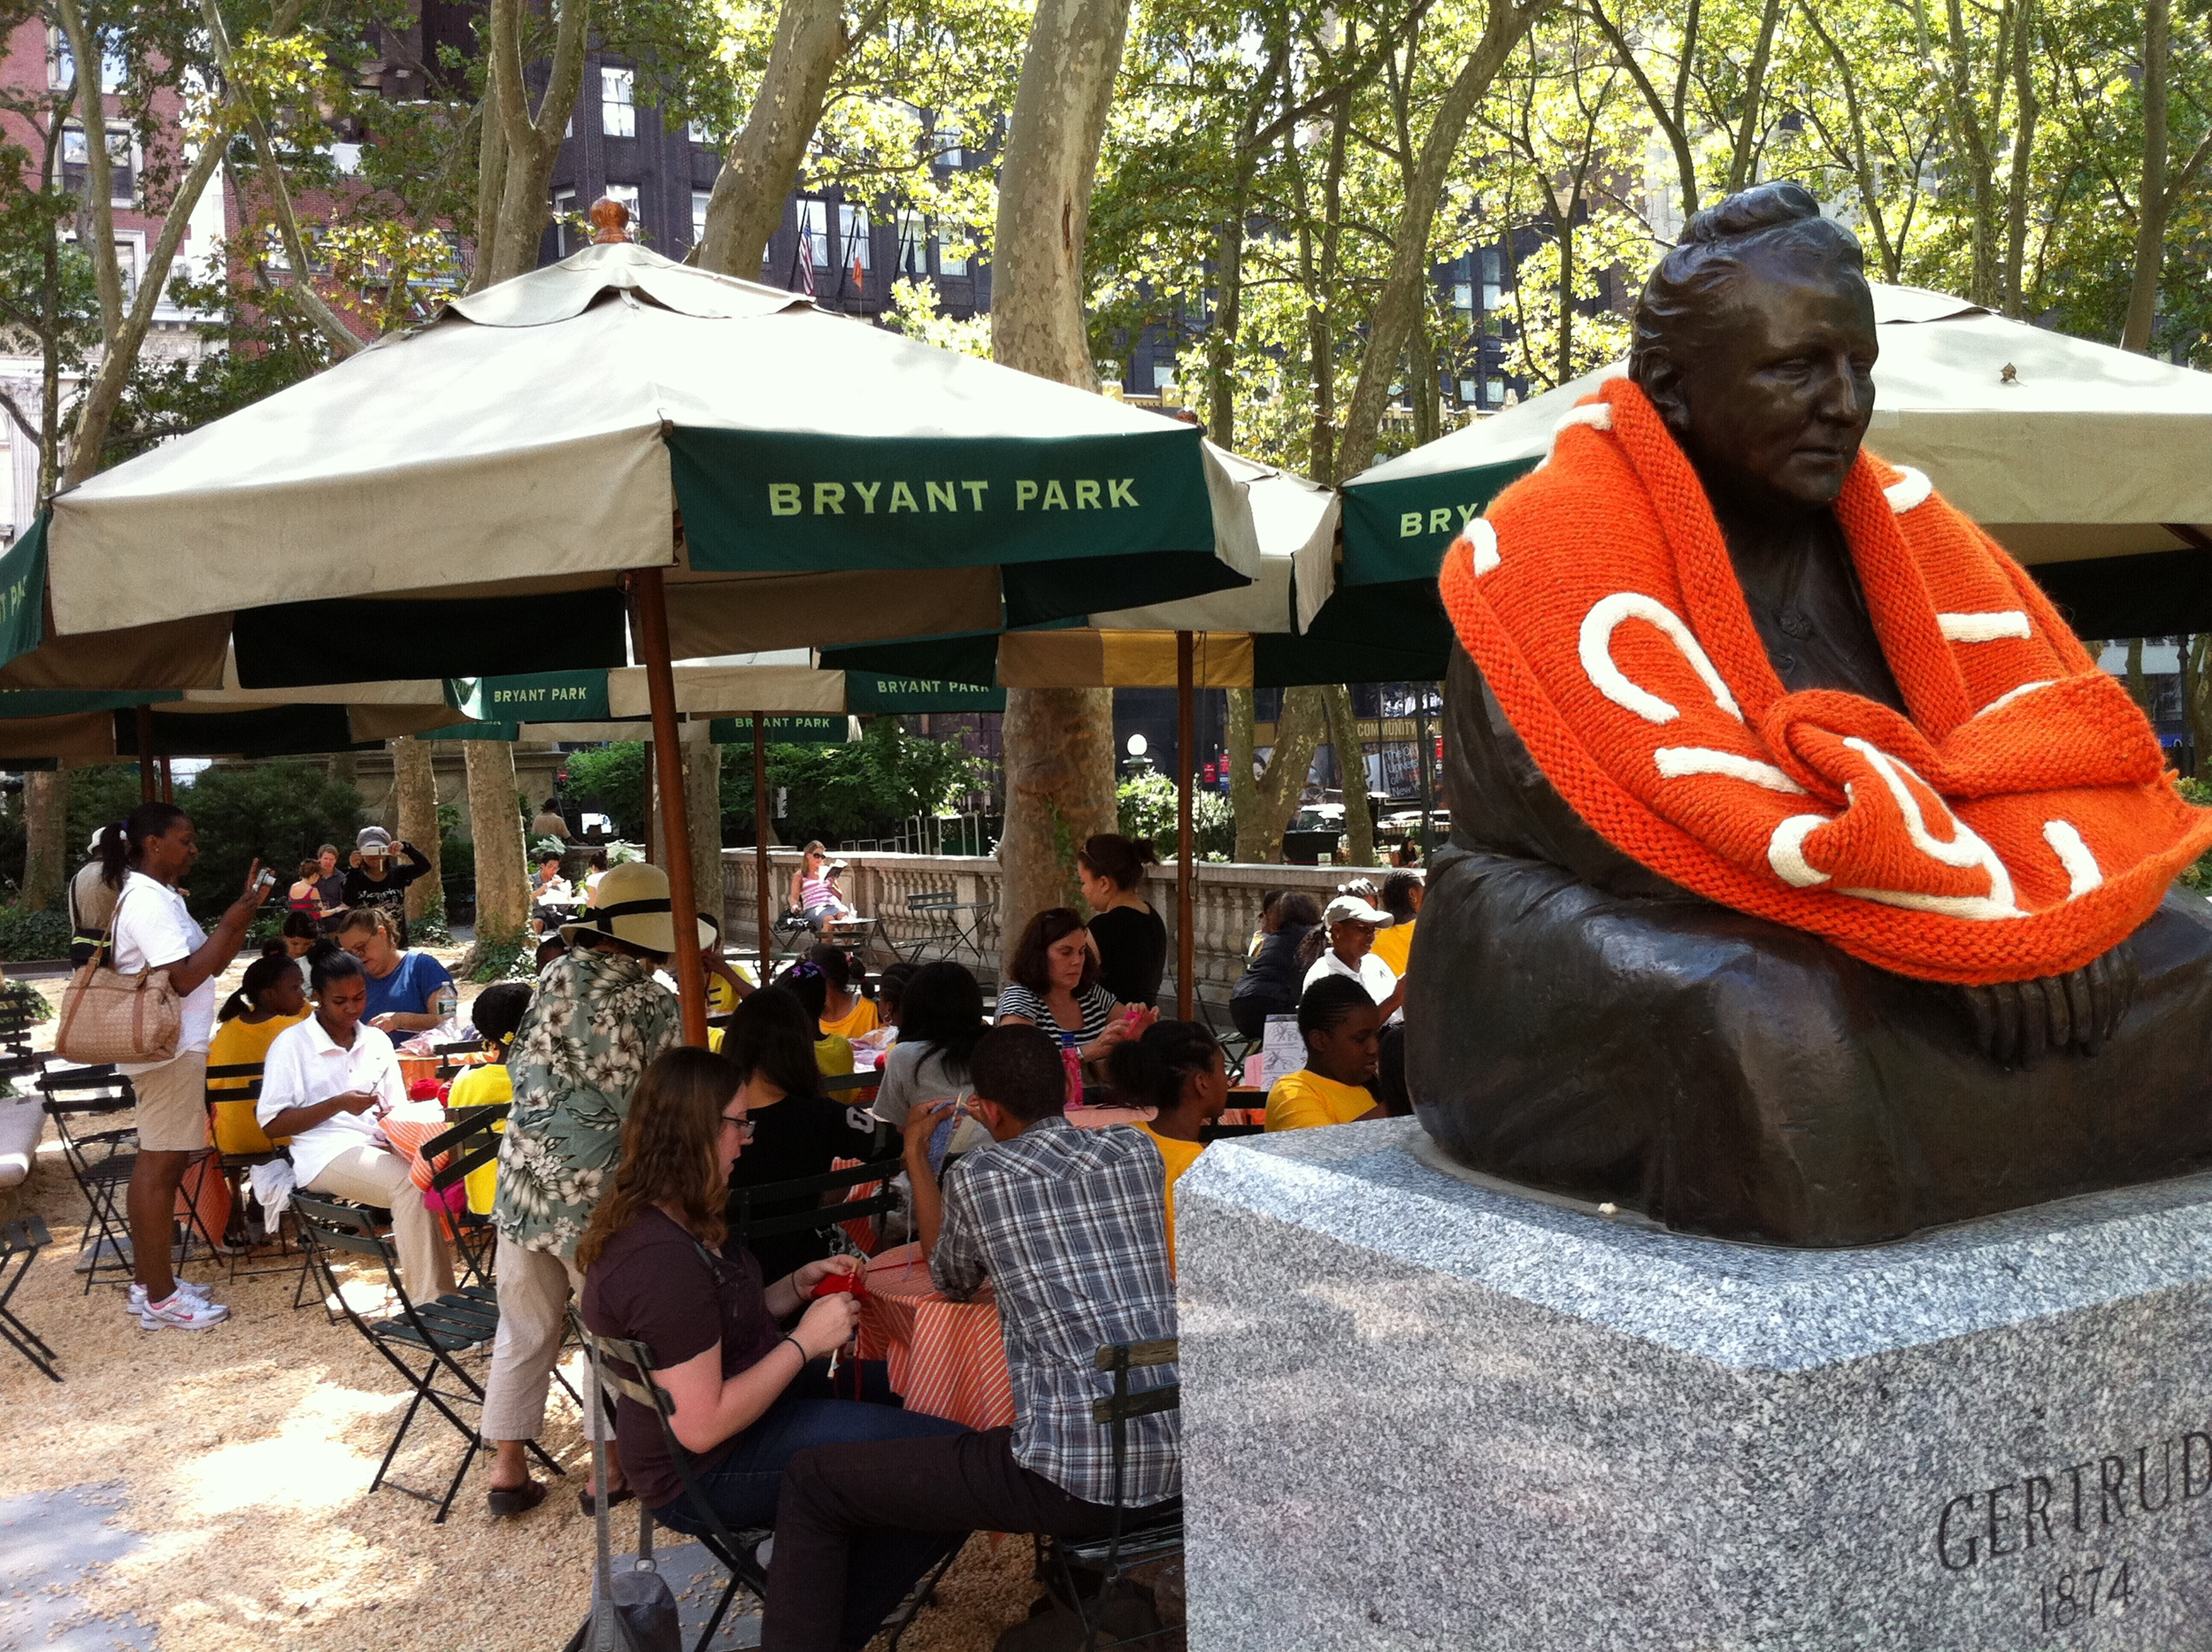 Knitting at Bryant Park